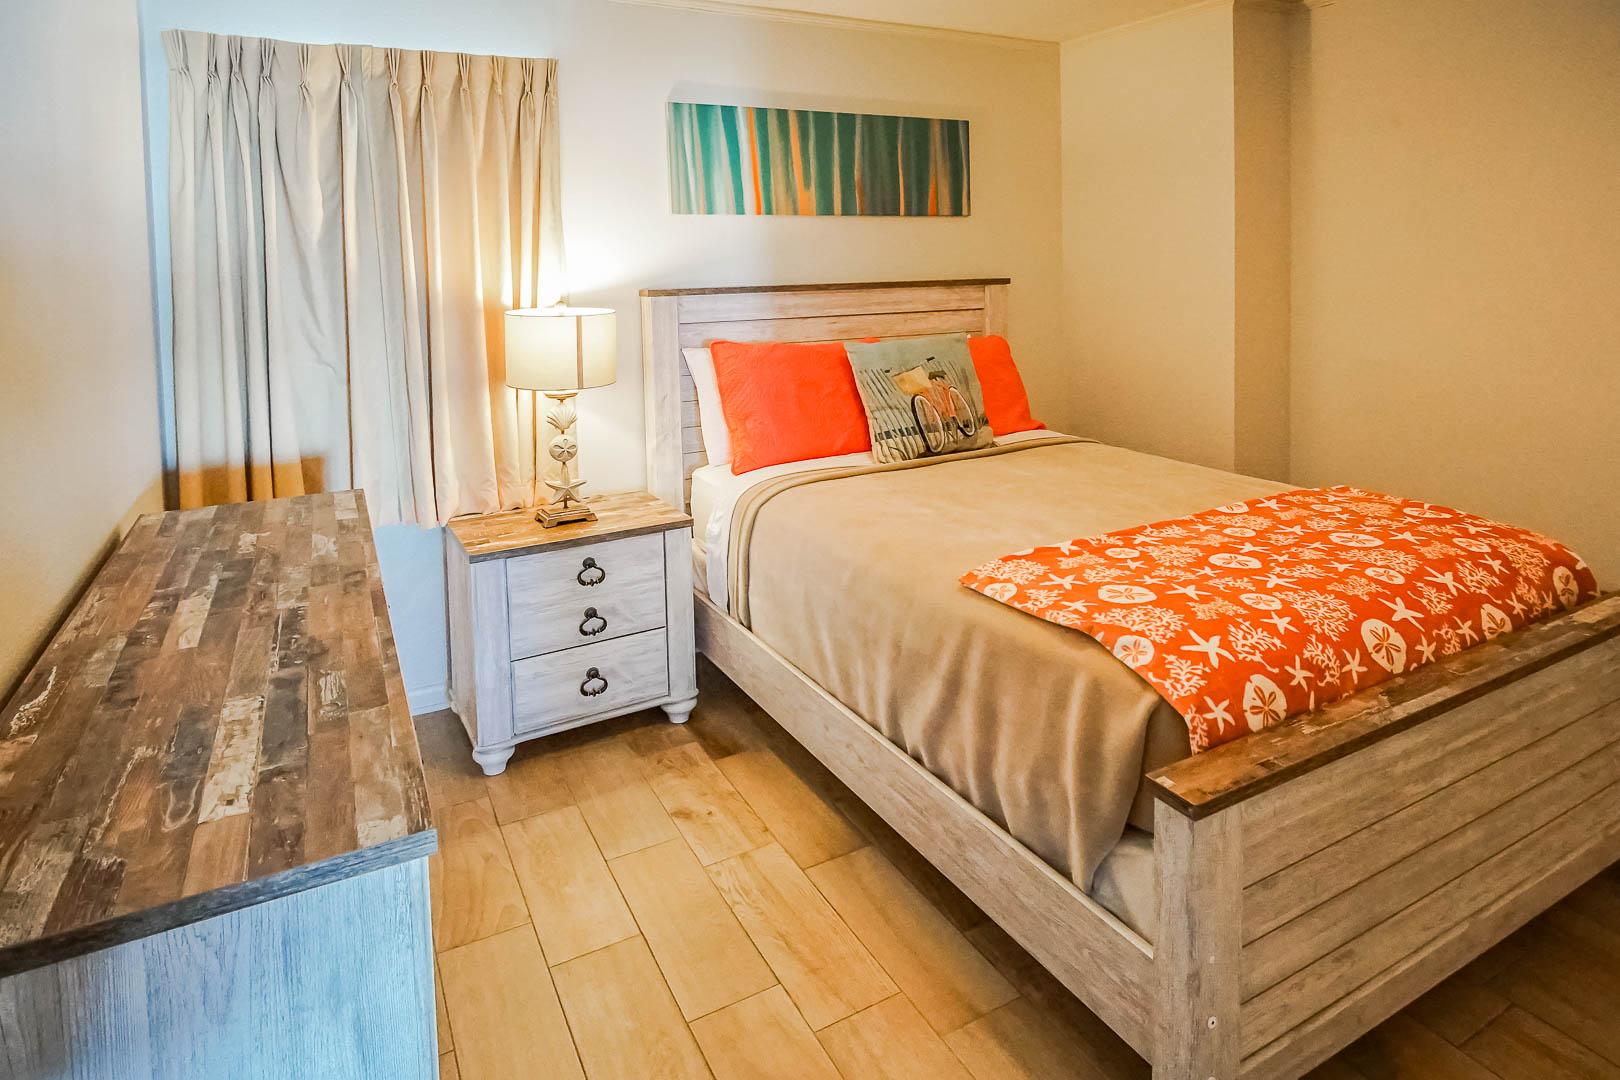 A vibrant bedroom at VRI's Shoreline Towers in Gulf Shores, Alabama.